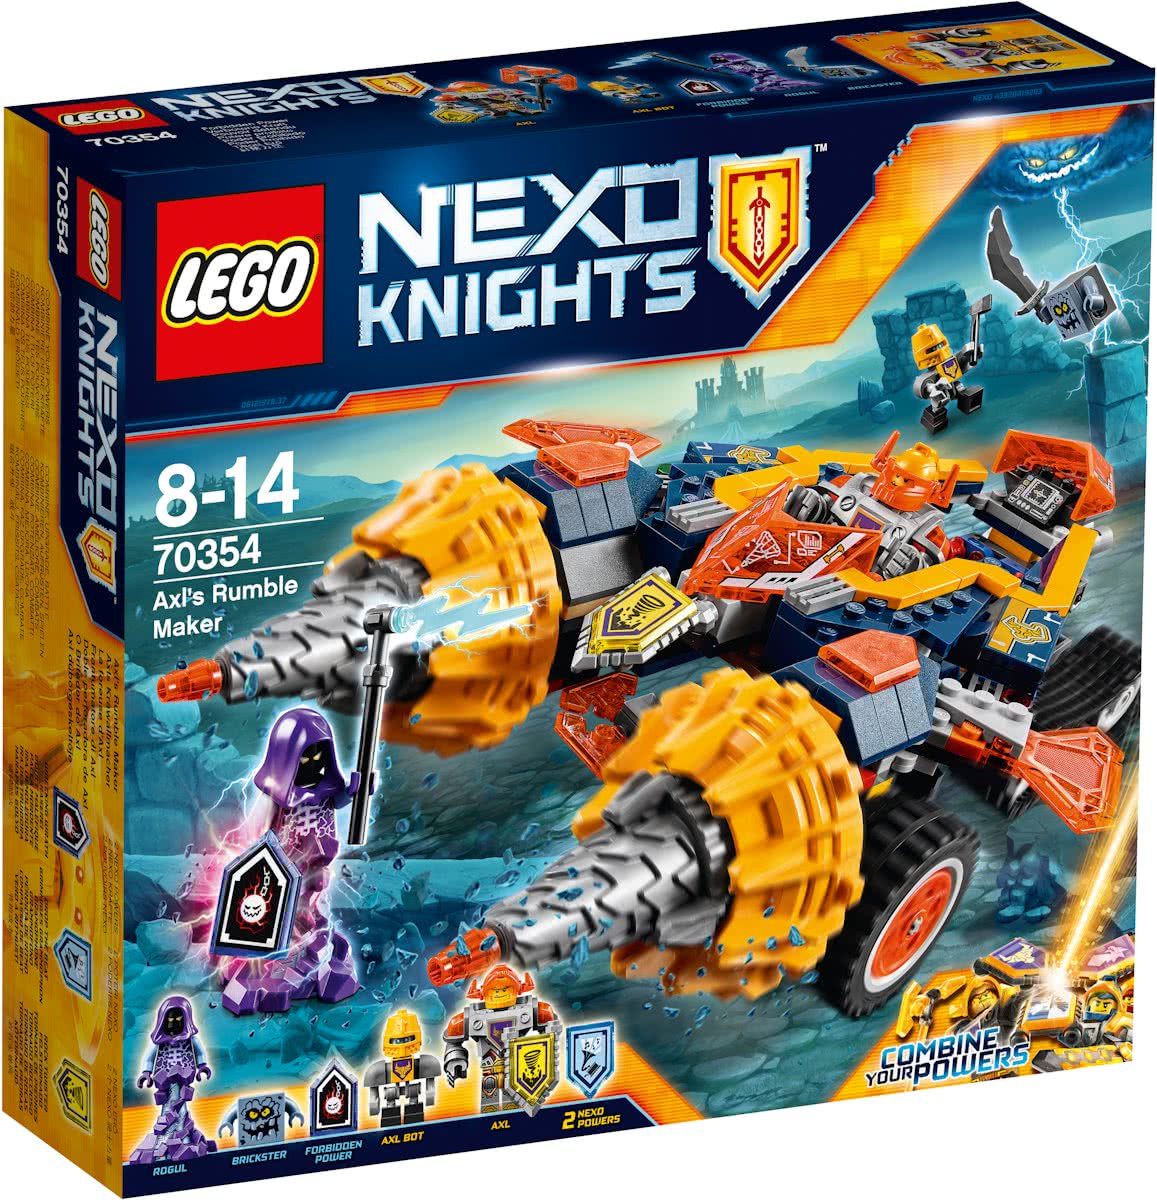 LEGO NEXO KNIGHTS Axls Rumble Maker - 70354